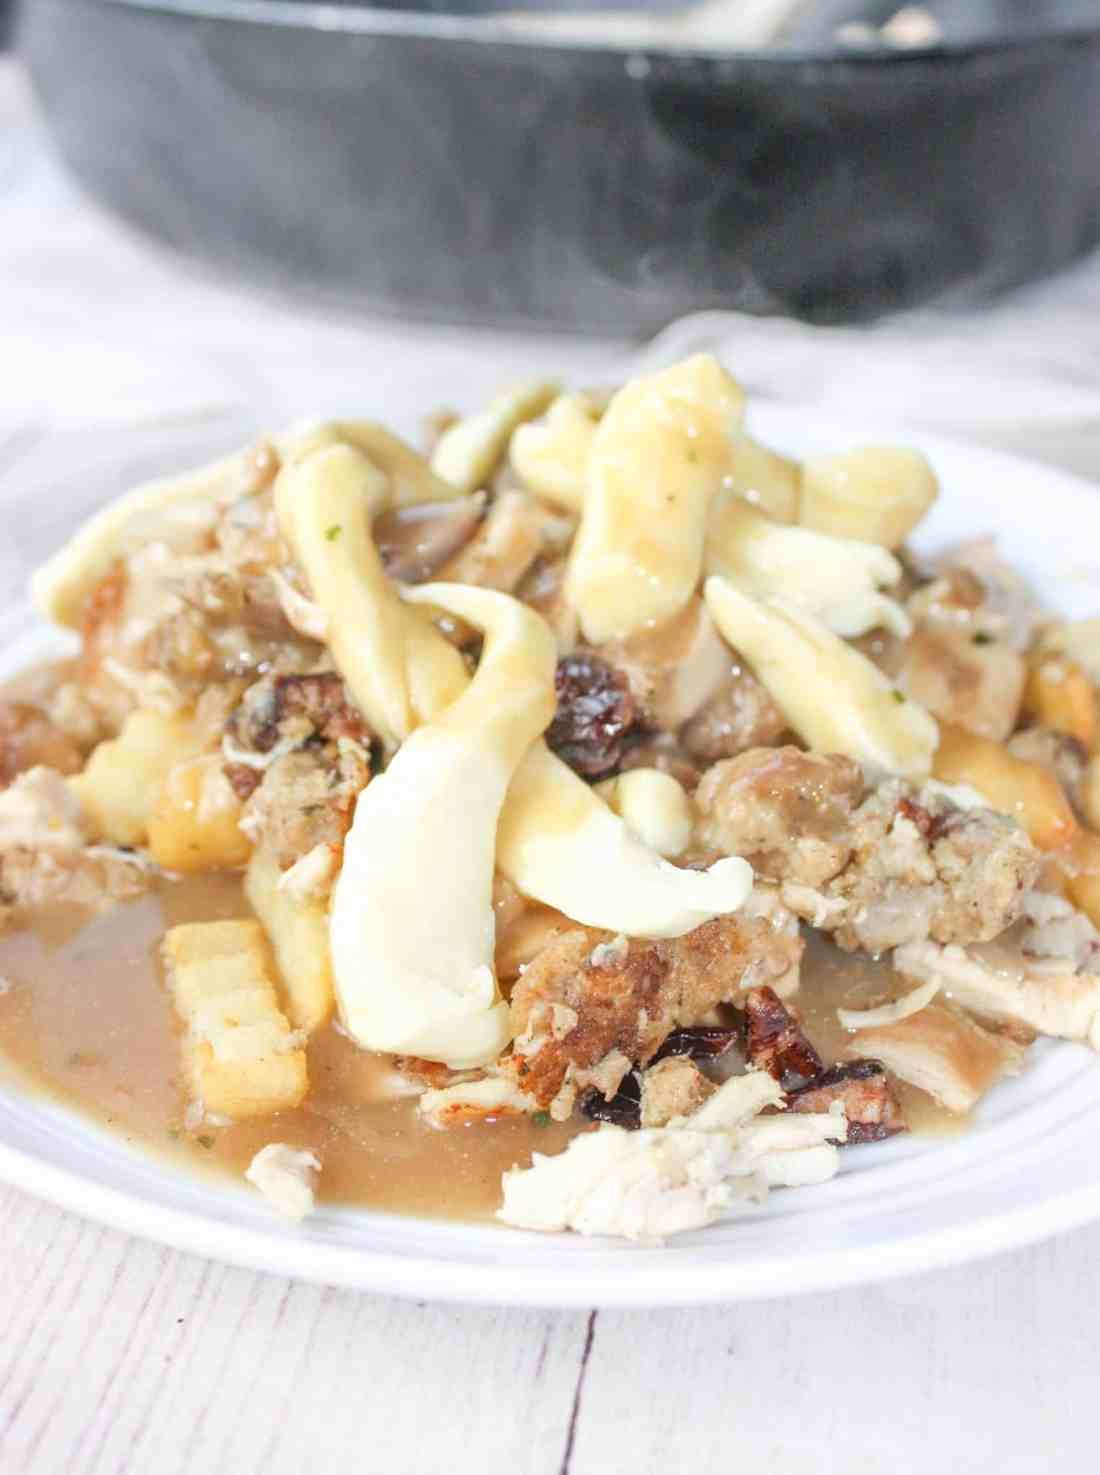 With Canadian Thanksgiving behind us and American Thanksgiving around the corner, Festive Poutine is an easy, tasty way to use up some holiday meal leftovers.